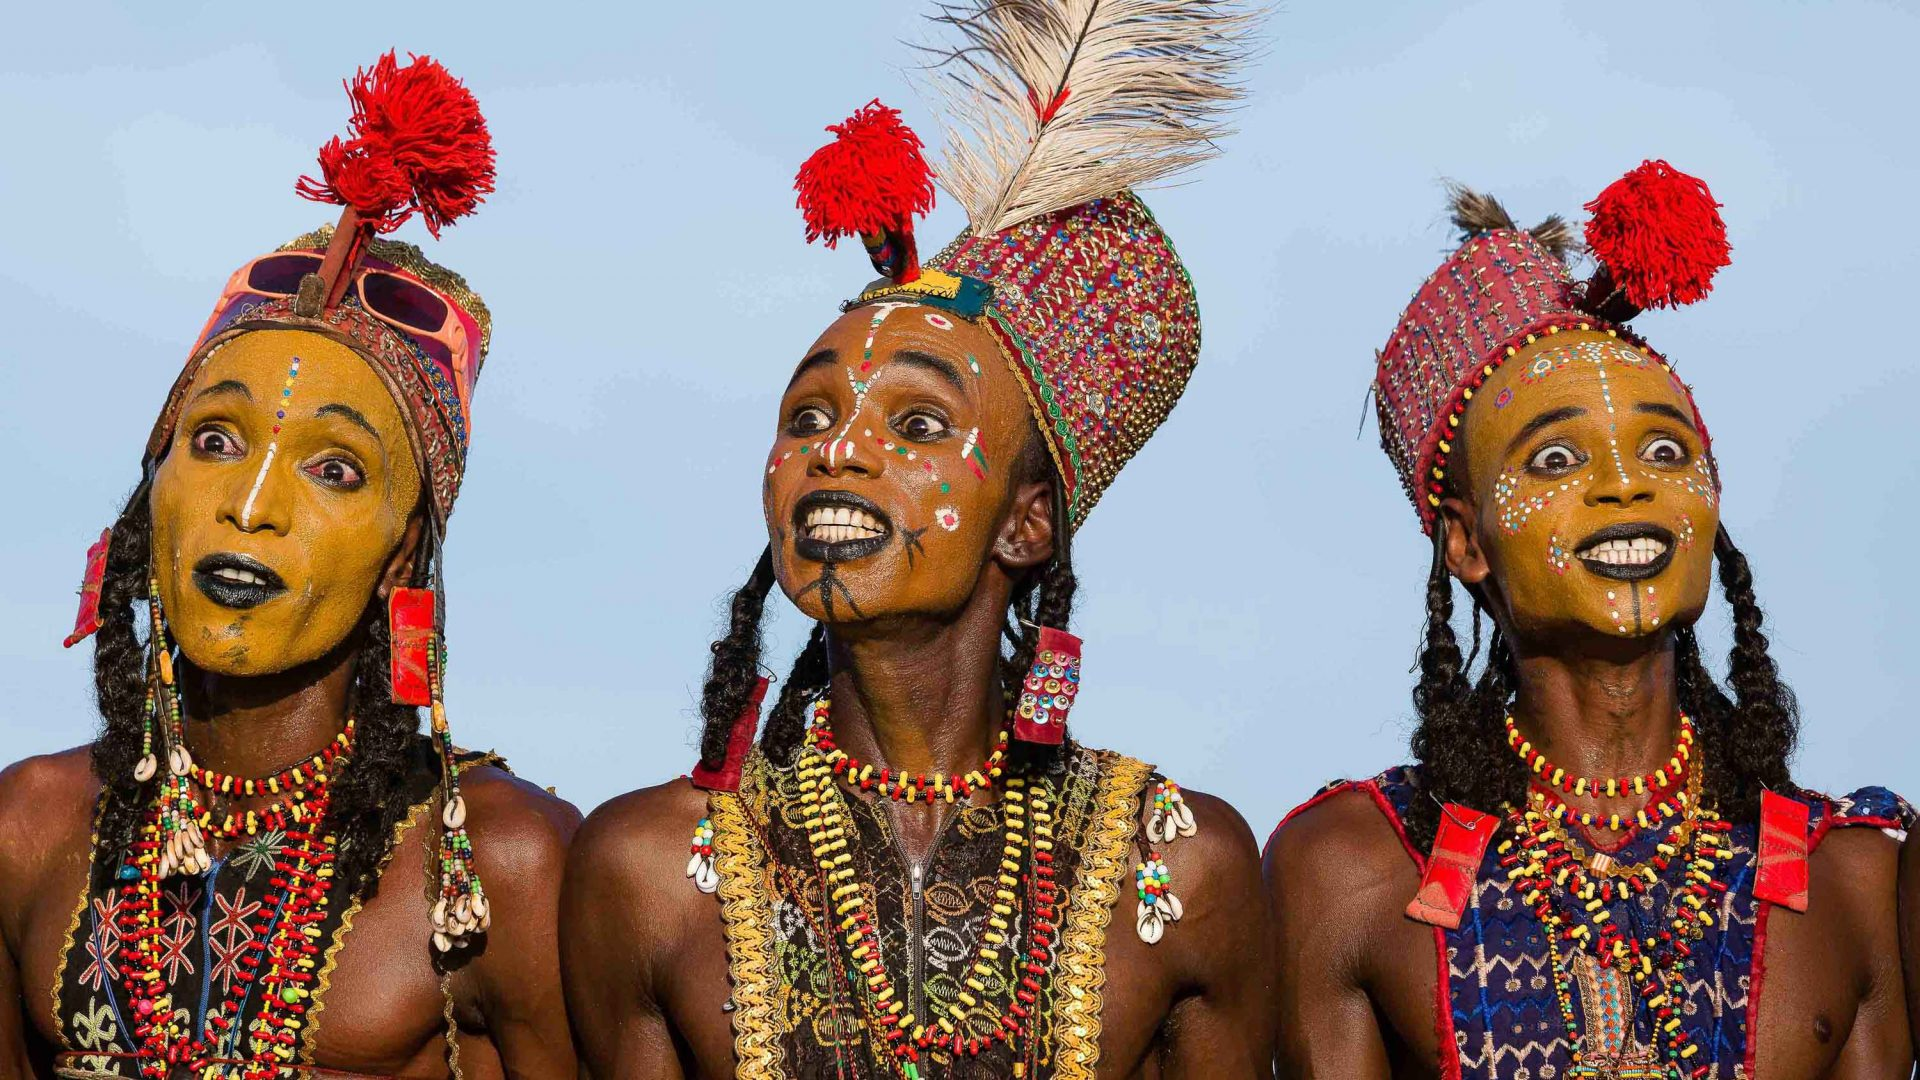 There's no Tinder in the desert: How Chad's Wodaabe nomads find love